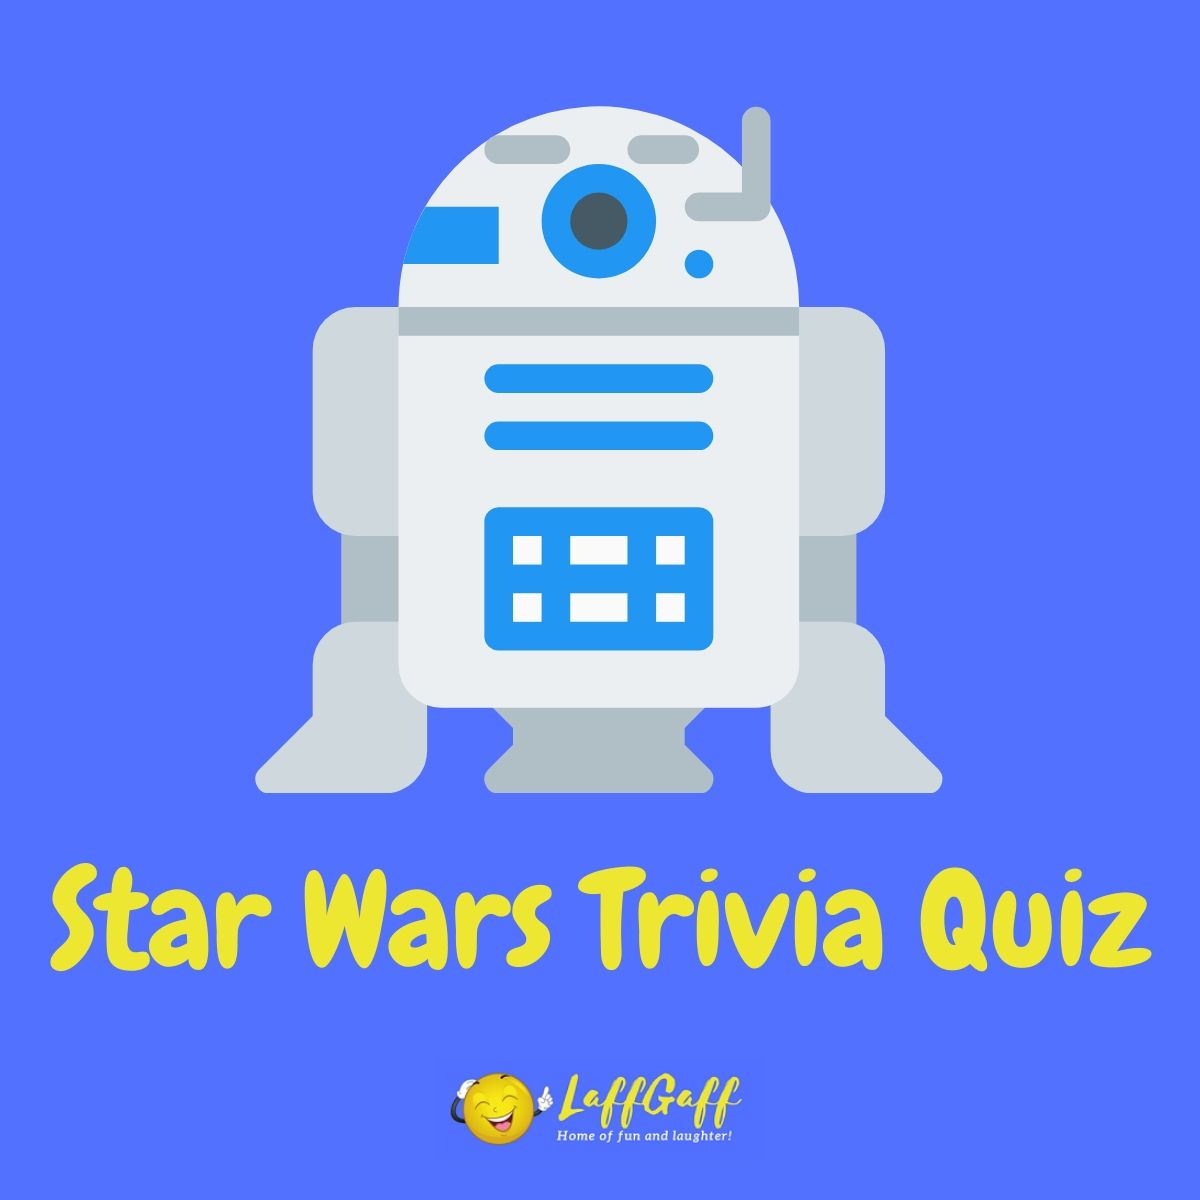 Featured image for a page of Star Wars trivia questions and answers.